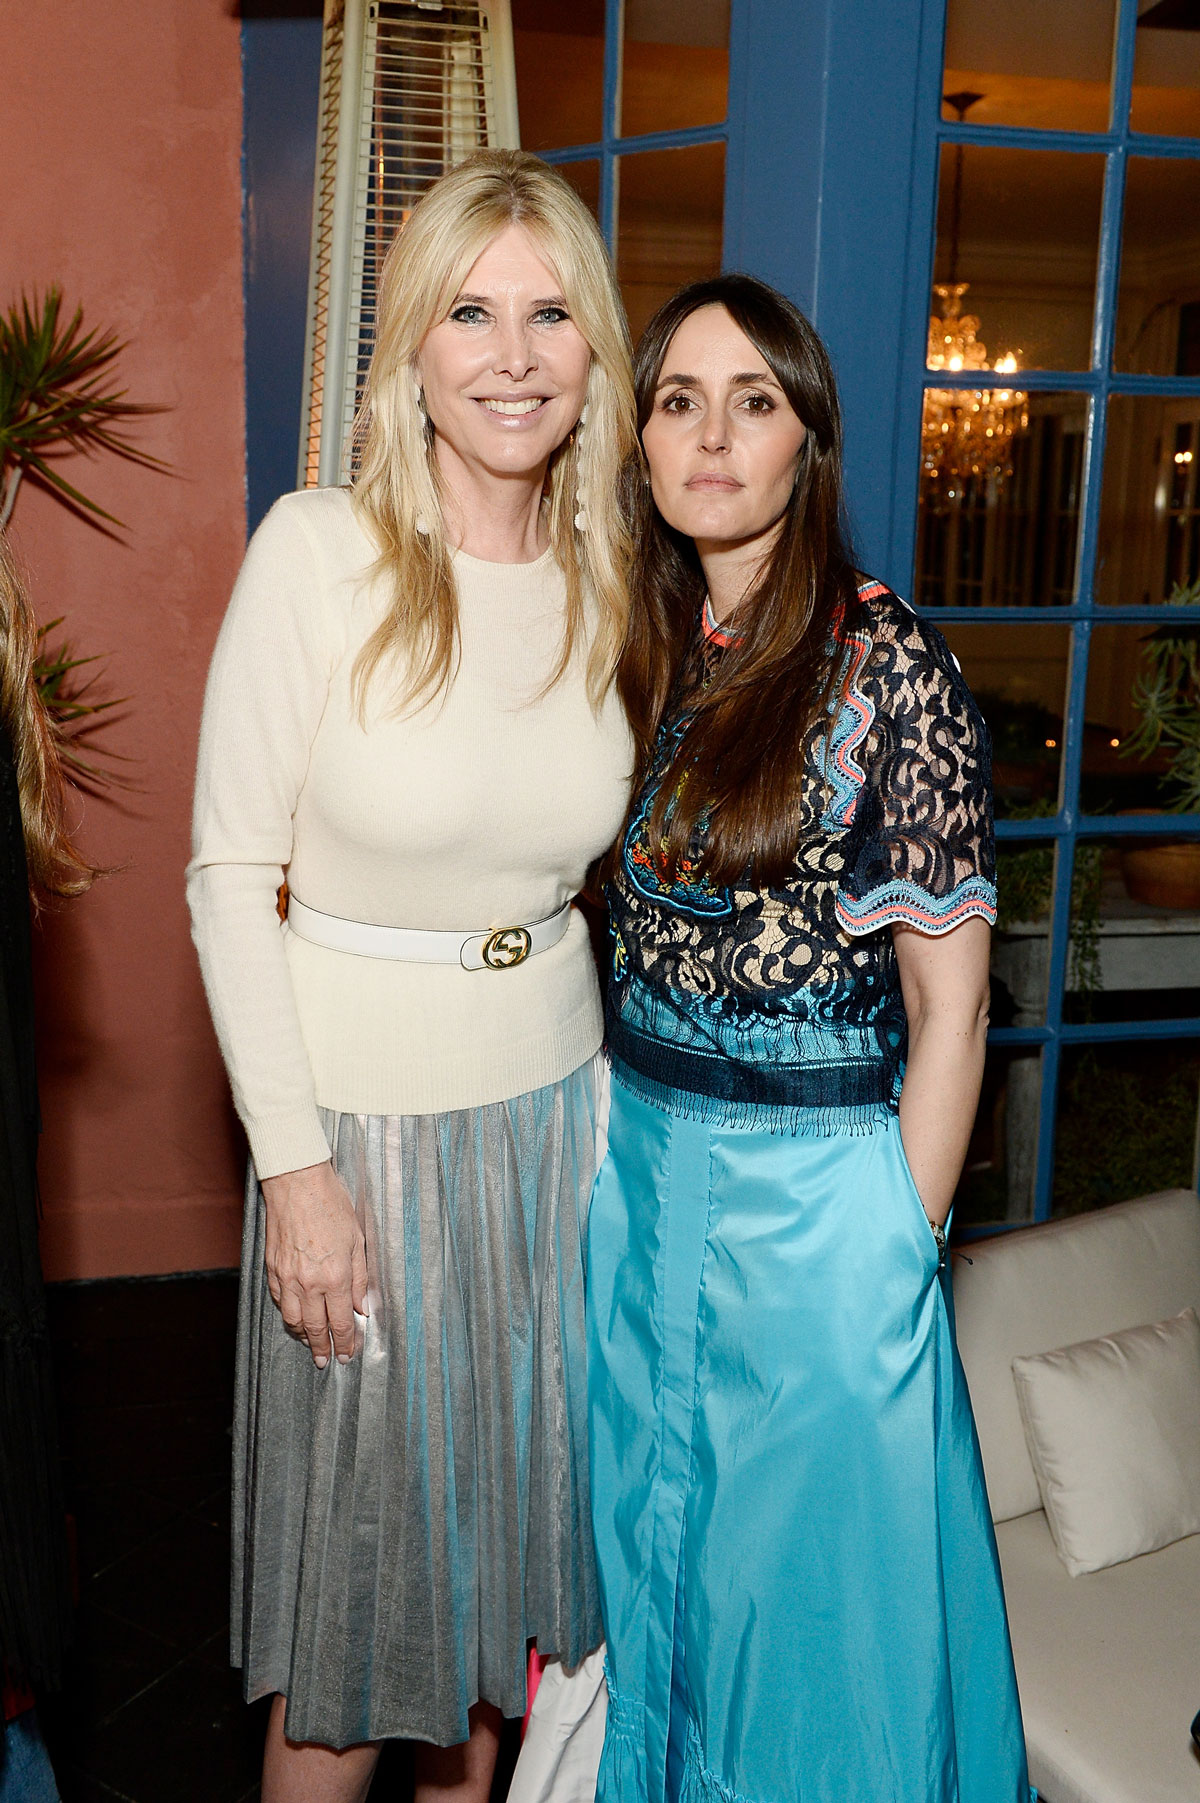 Irena Medavoy and Tania Fares celebrate the launch of London Uprising Fifty Fashion Designers One City on April 18, 2017 in Los Angeles, California. (Photo by Stefanie Keenan/Getty Images for Tania Fares)